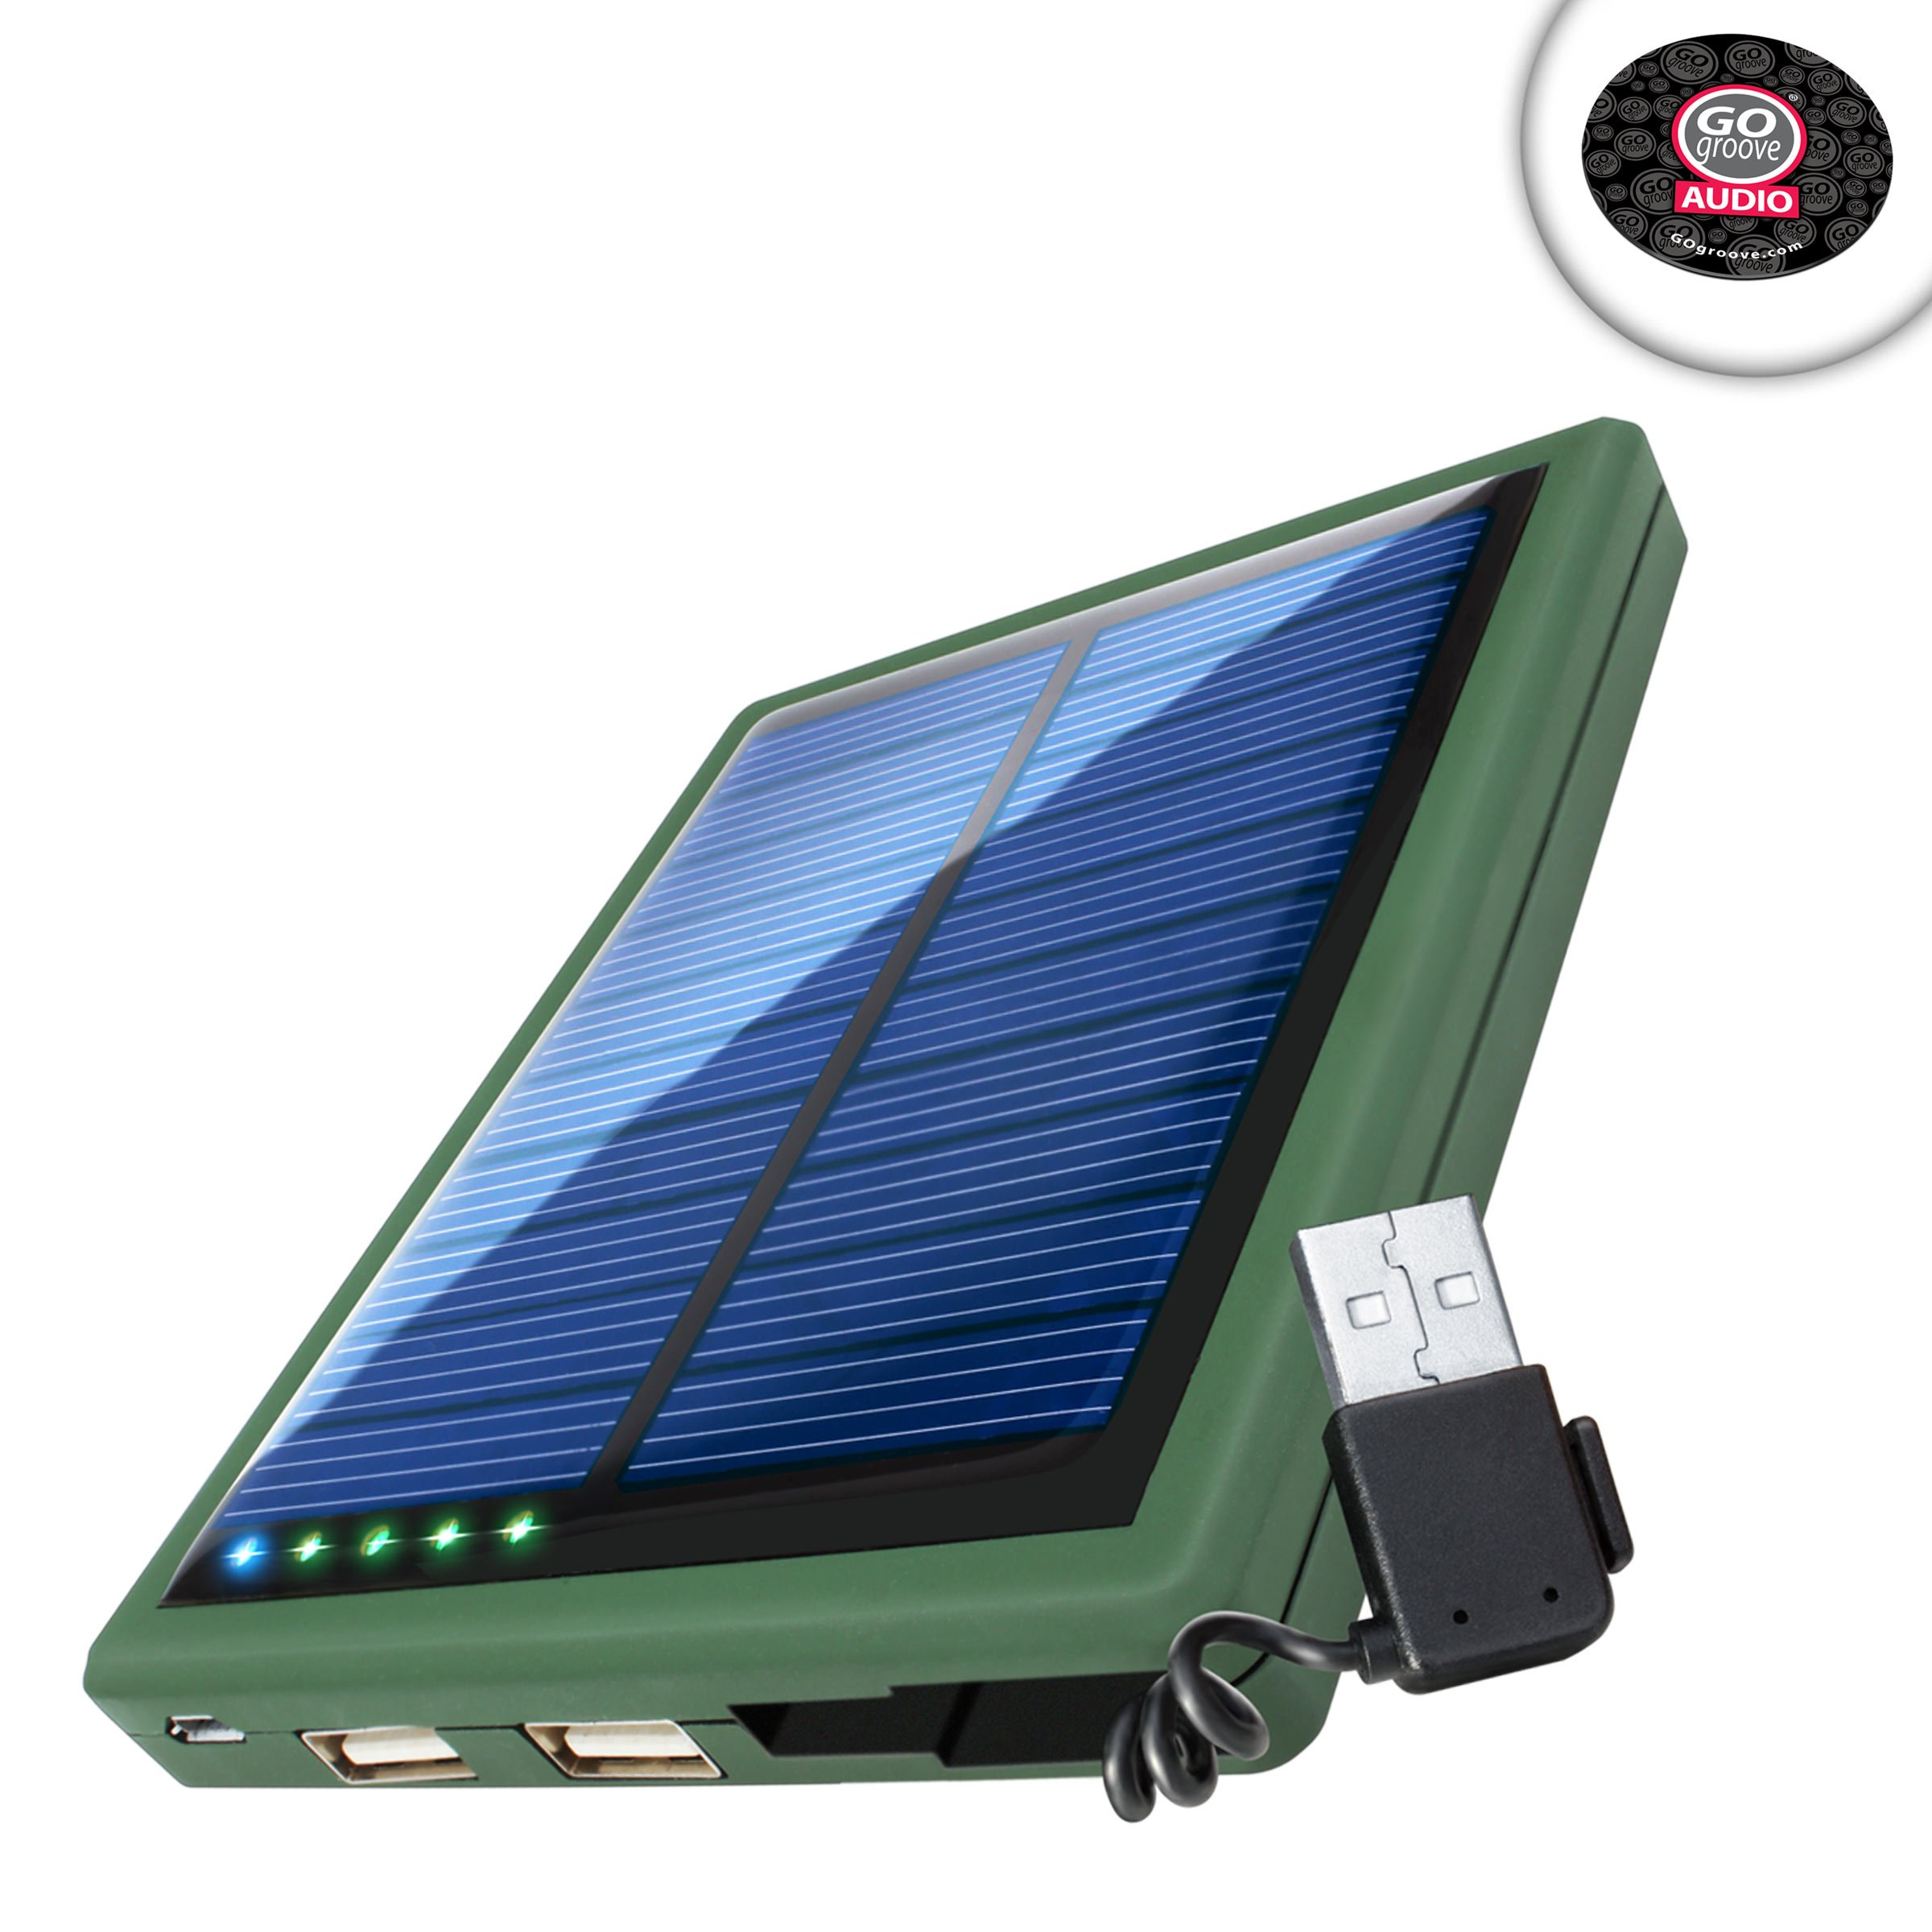 ReVIVE Restore SL 5000 Solar Charger Battery Pack w/Dual USB Charging Ports & Built-in Stowaway USB Cable Works with GoPro Hero5 Black, Hero5 Session, Hero Session & More Action Cameras!